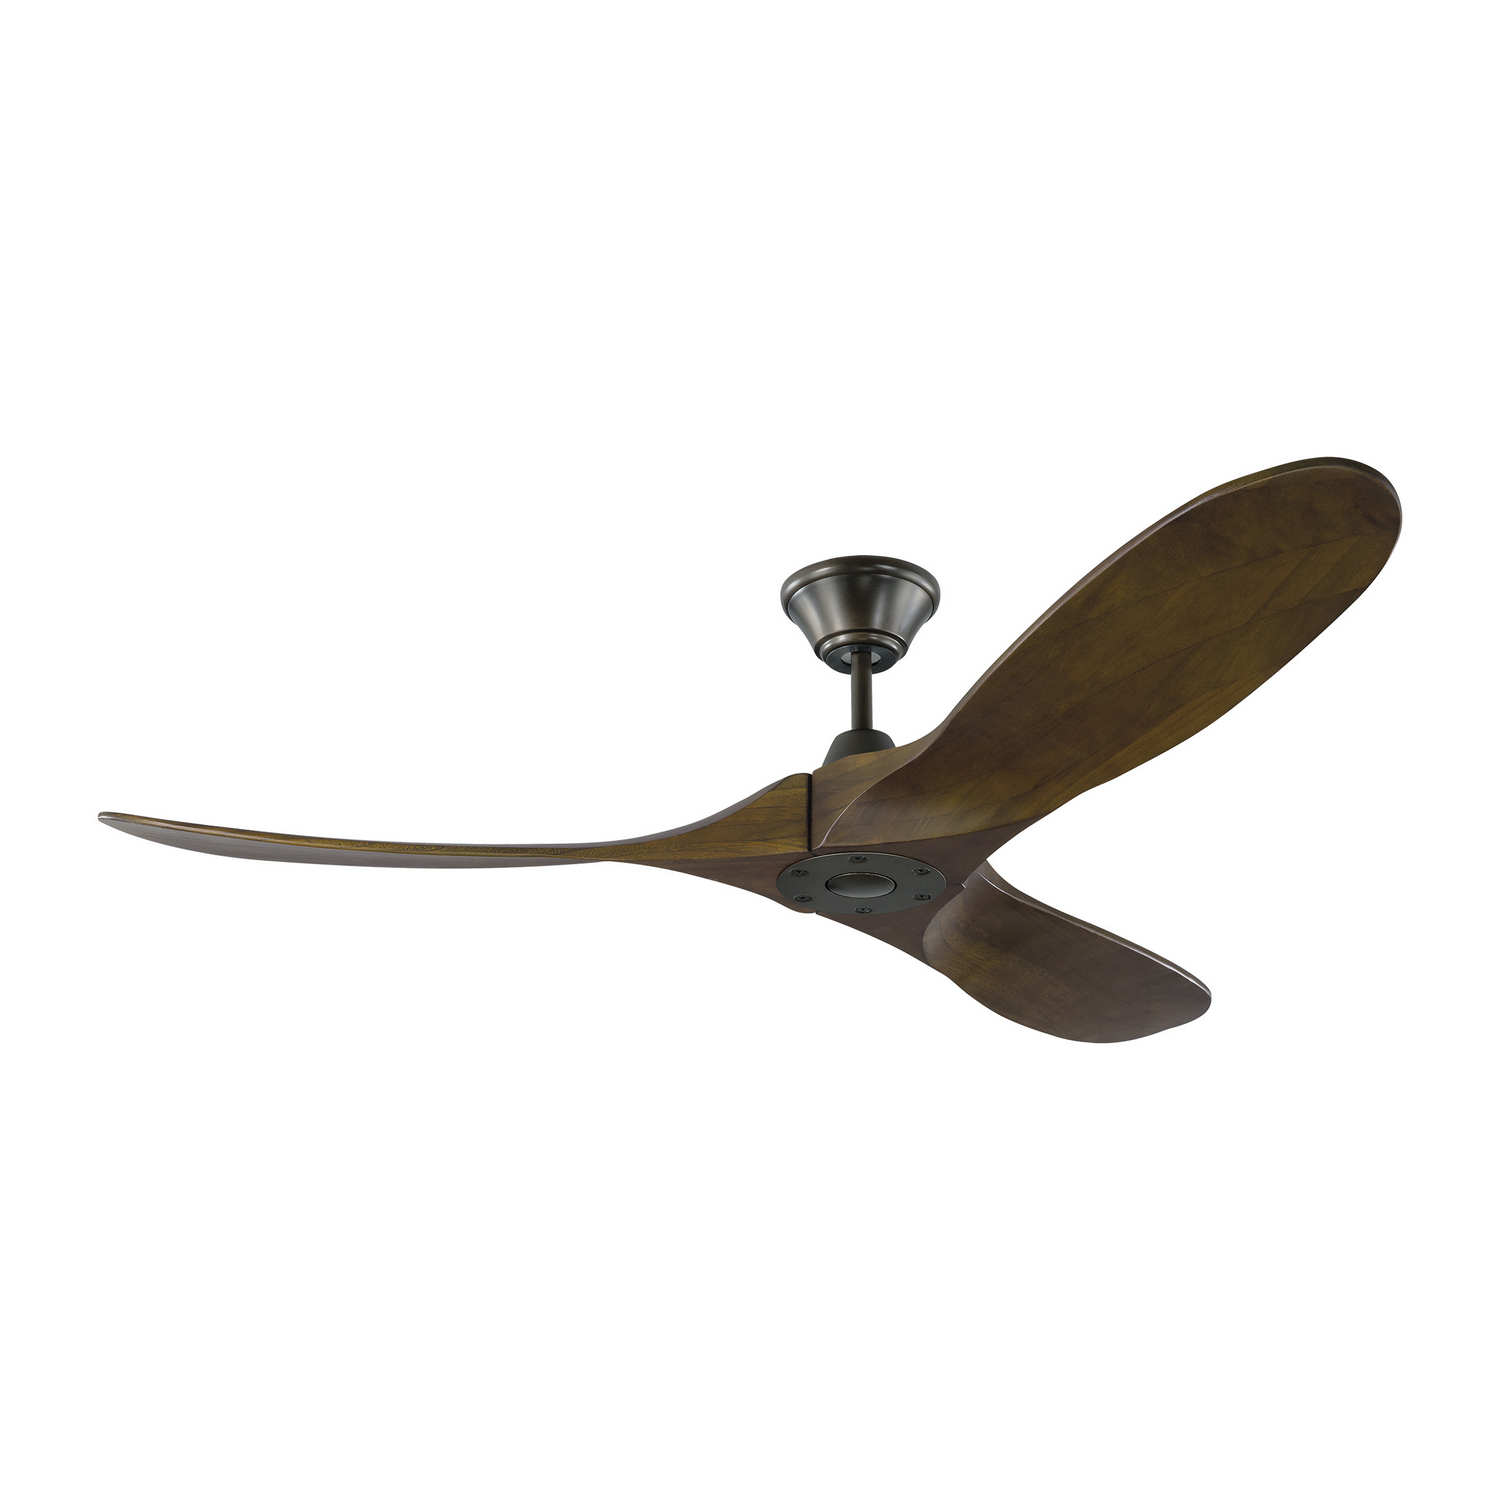 52 inchCeiling Fan from the Maverick II collection by Monte Carlo 3MAVR52BK